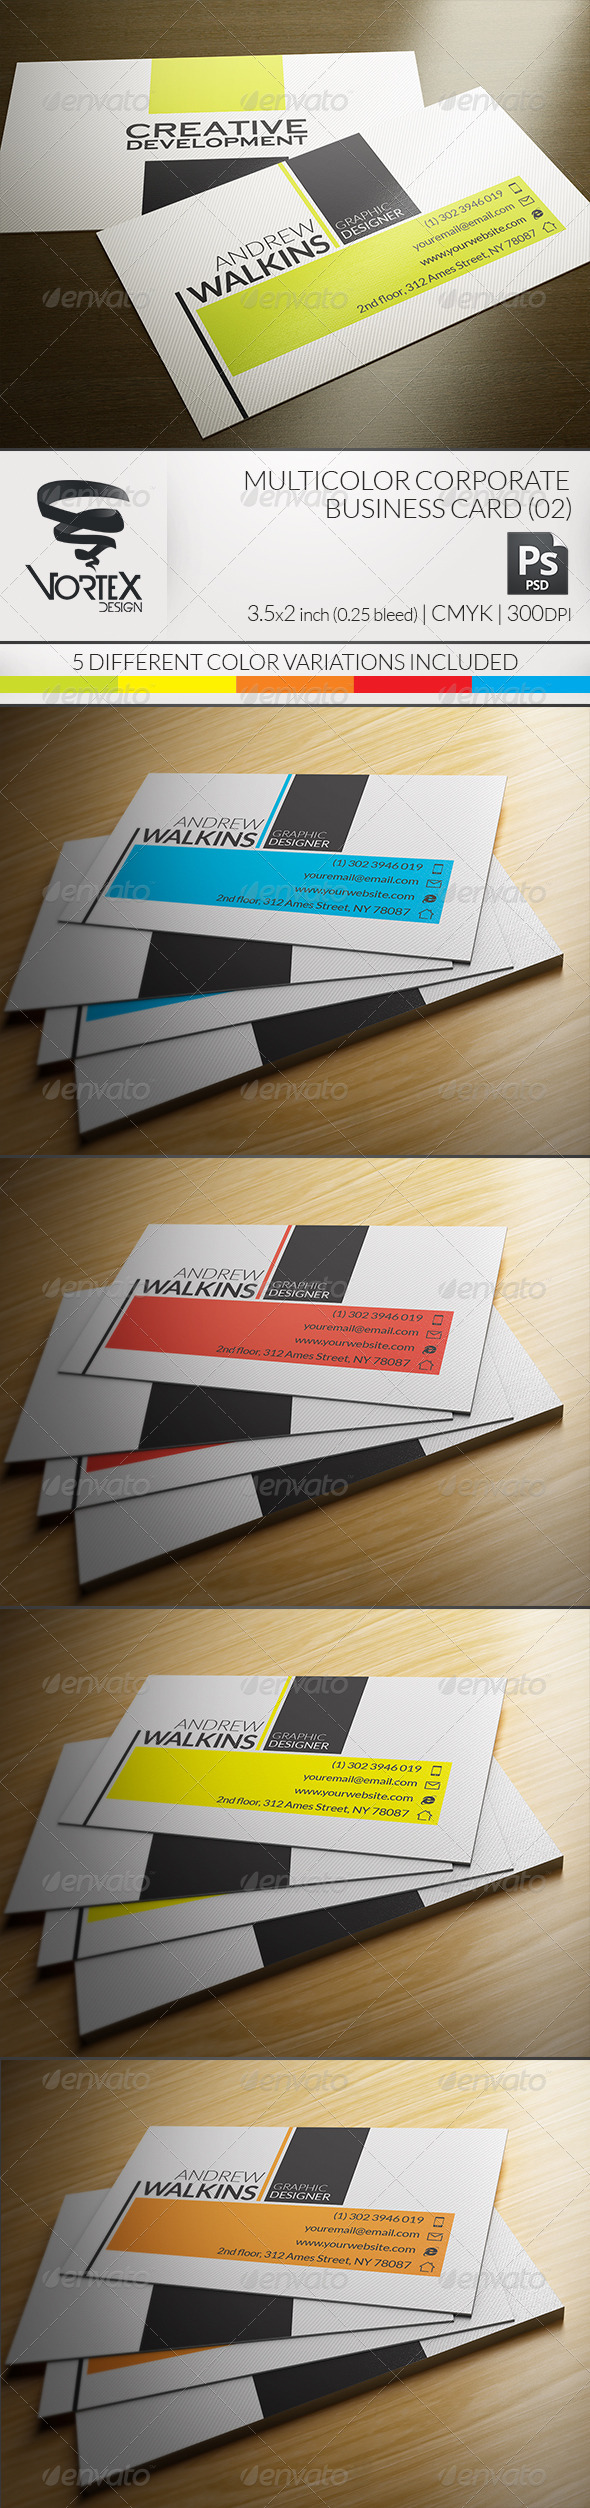 GraphicRiver Multicolor Corporate Business Card 02 5855168